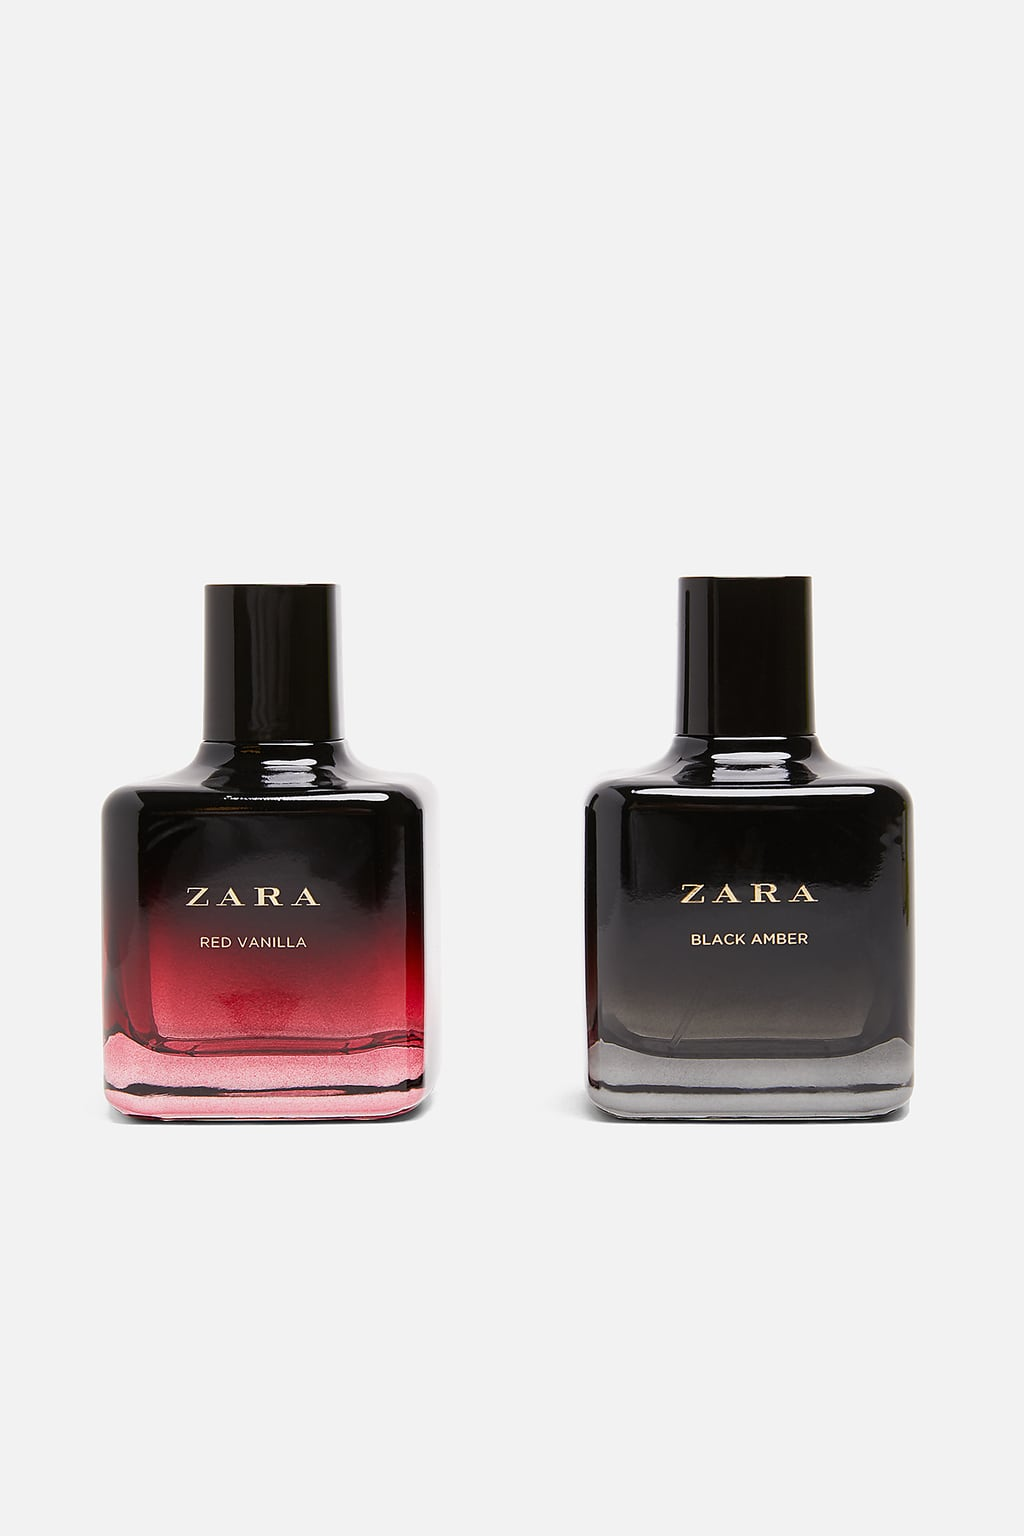 ZARA RED VANILLA AND AMBER